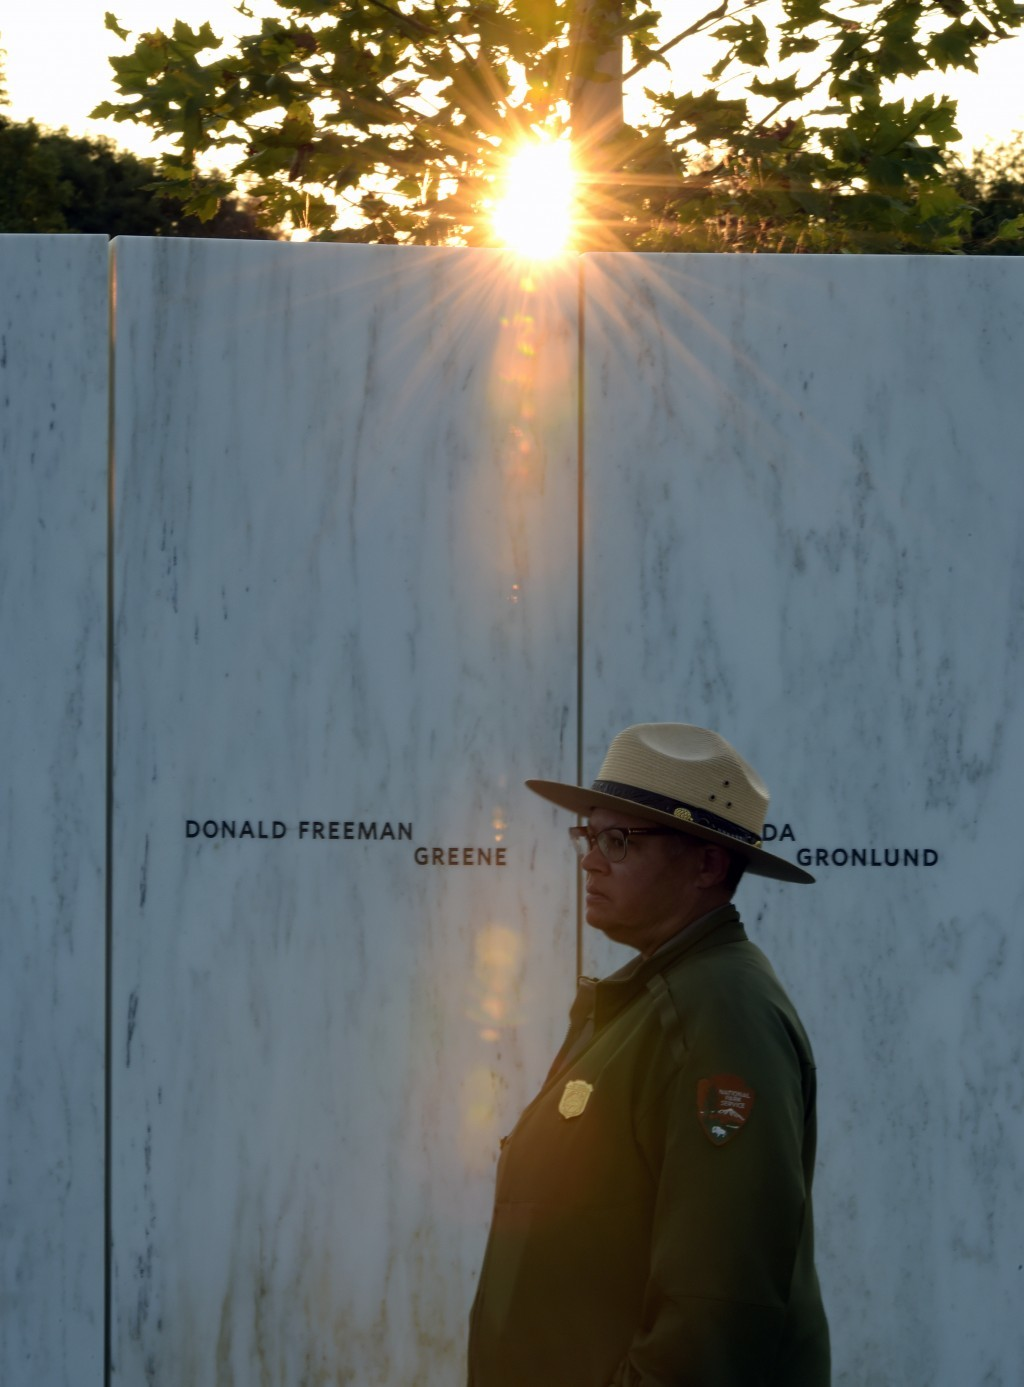 A park ranger stands in front of the Wall of Names at the United Flight 93 National Memorial in Shanksville, Pa., Saturday, Sept. 10, 2017. (AP Photo/...